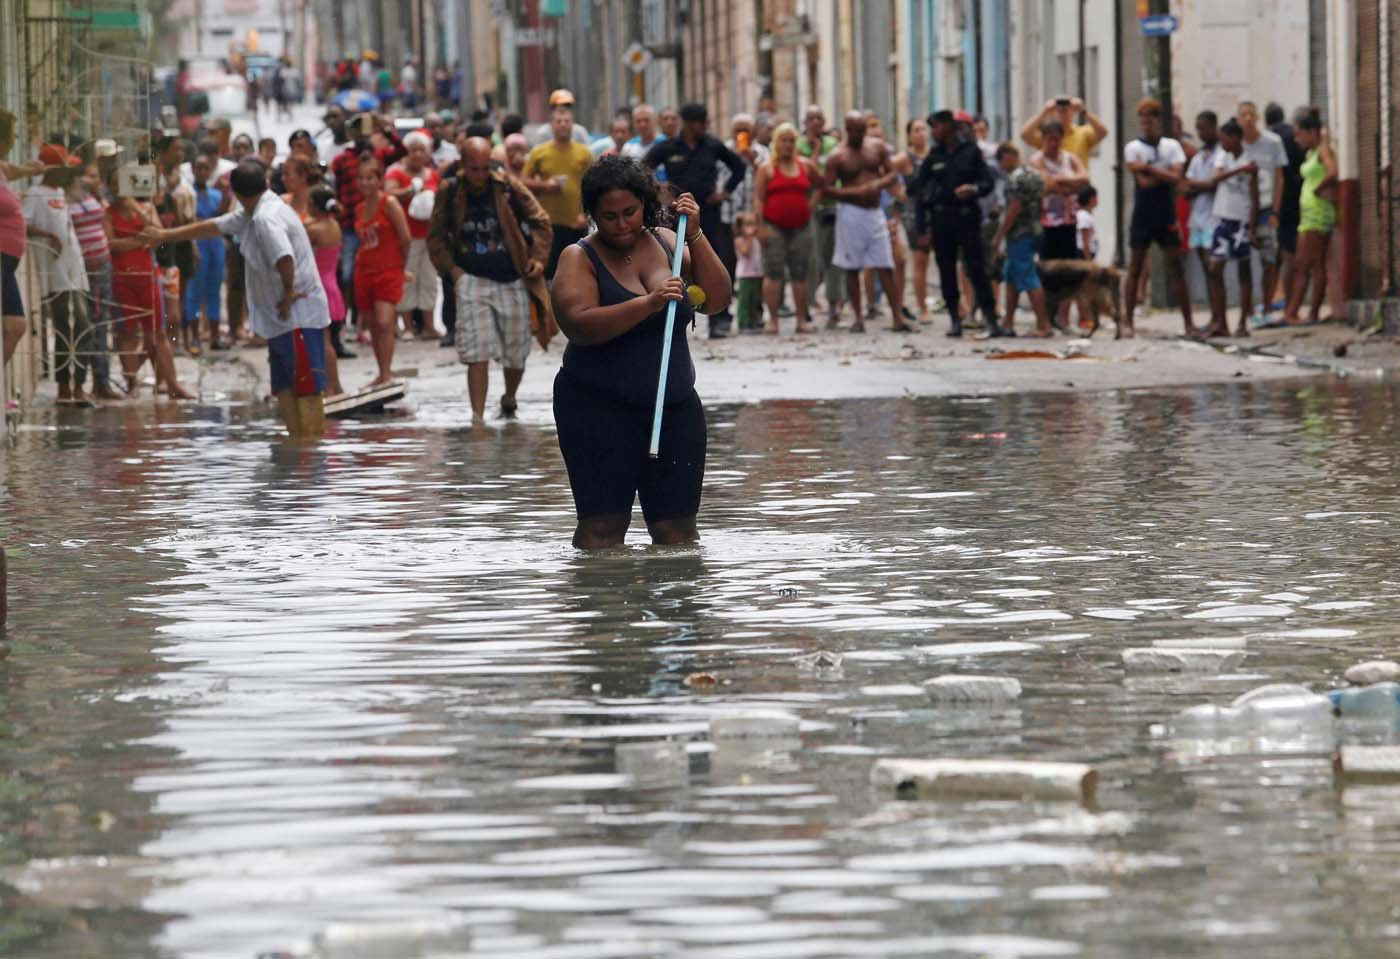 REFILE - QUALITY REPEAT A woman wades through the water after the passing of Hurricane Irma, in Havana, Cuba September 10, 2017. REUTERS/Stringer NO SALES. NO ARCHIVES